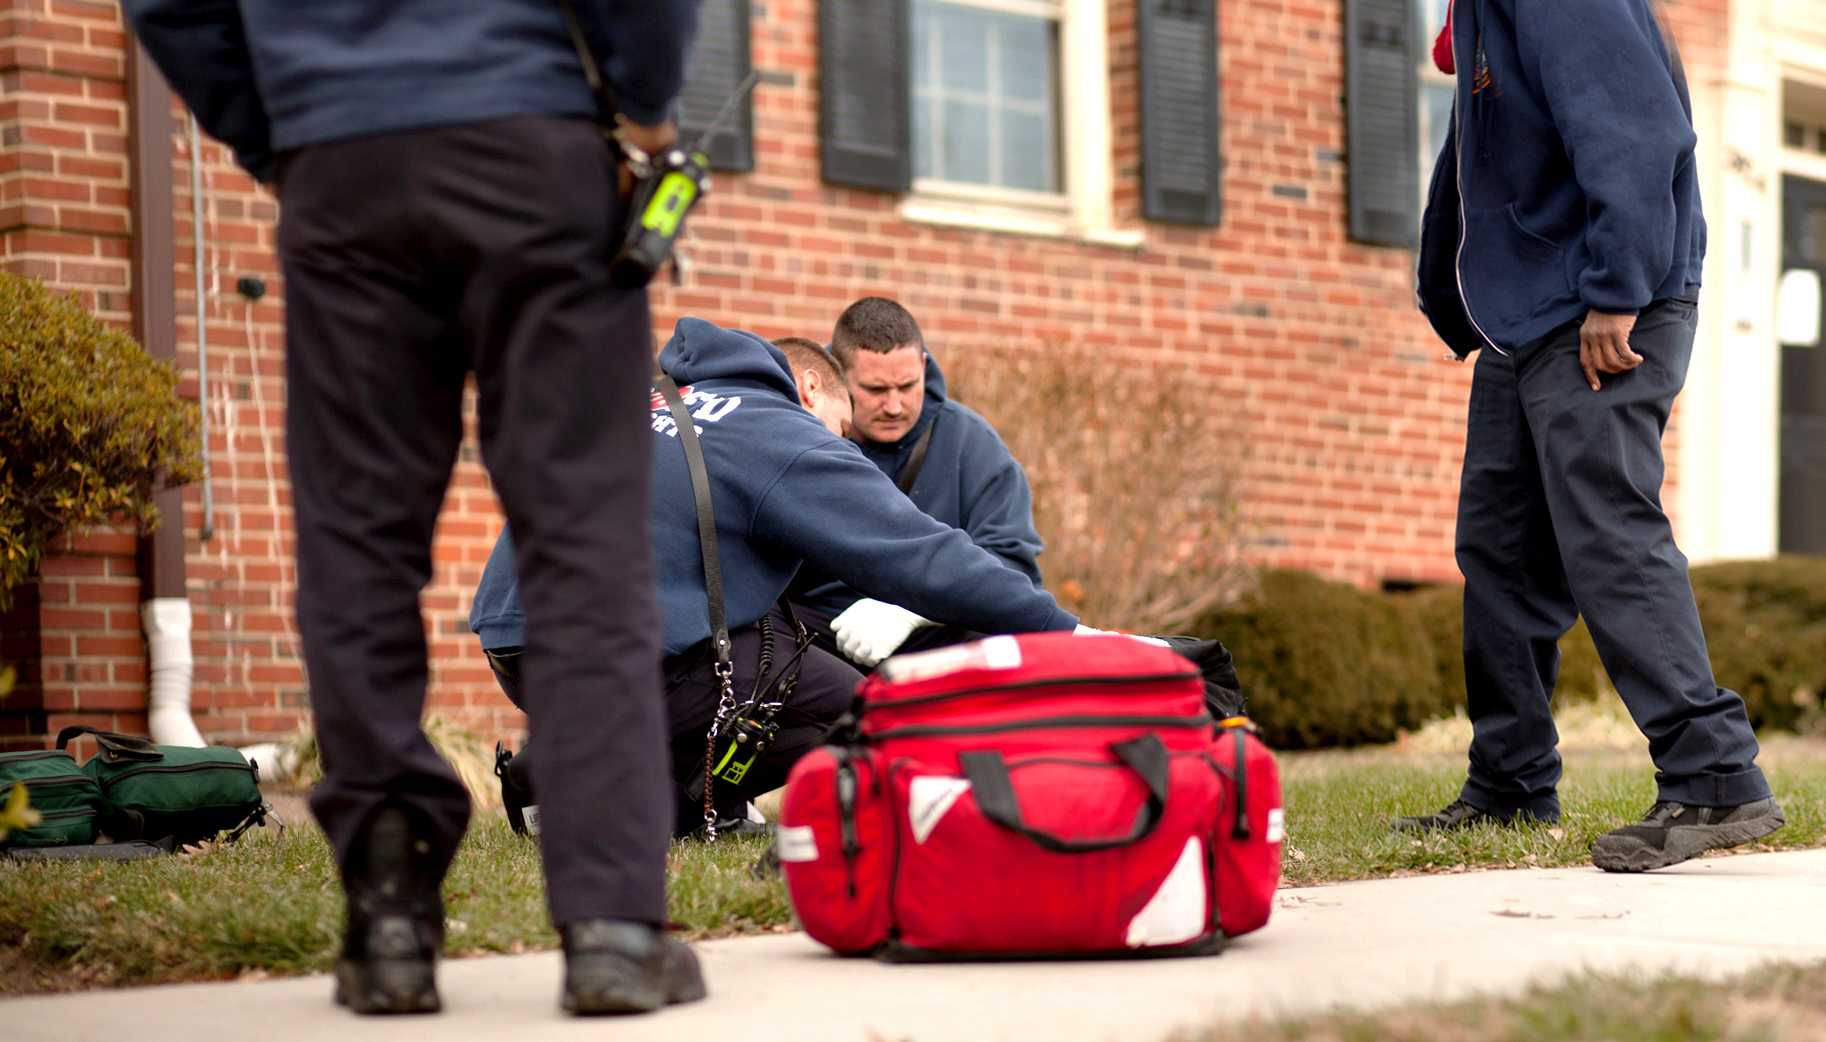 WASHINGTON D.C., December 22nd, 2017-- Firefighters Mastri and John Doe assess a patient unconscious on the grass outside of an apartment.  Photo by Taylor Mickal.